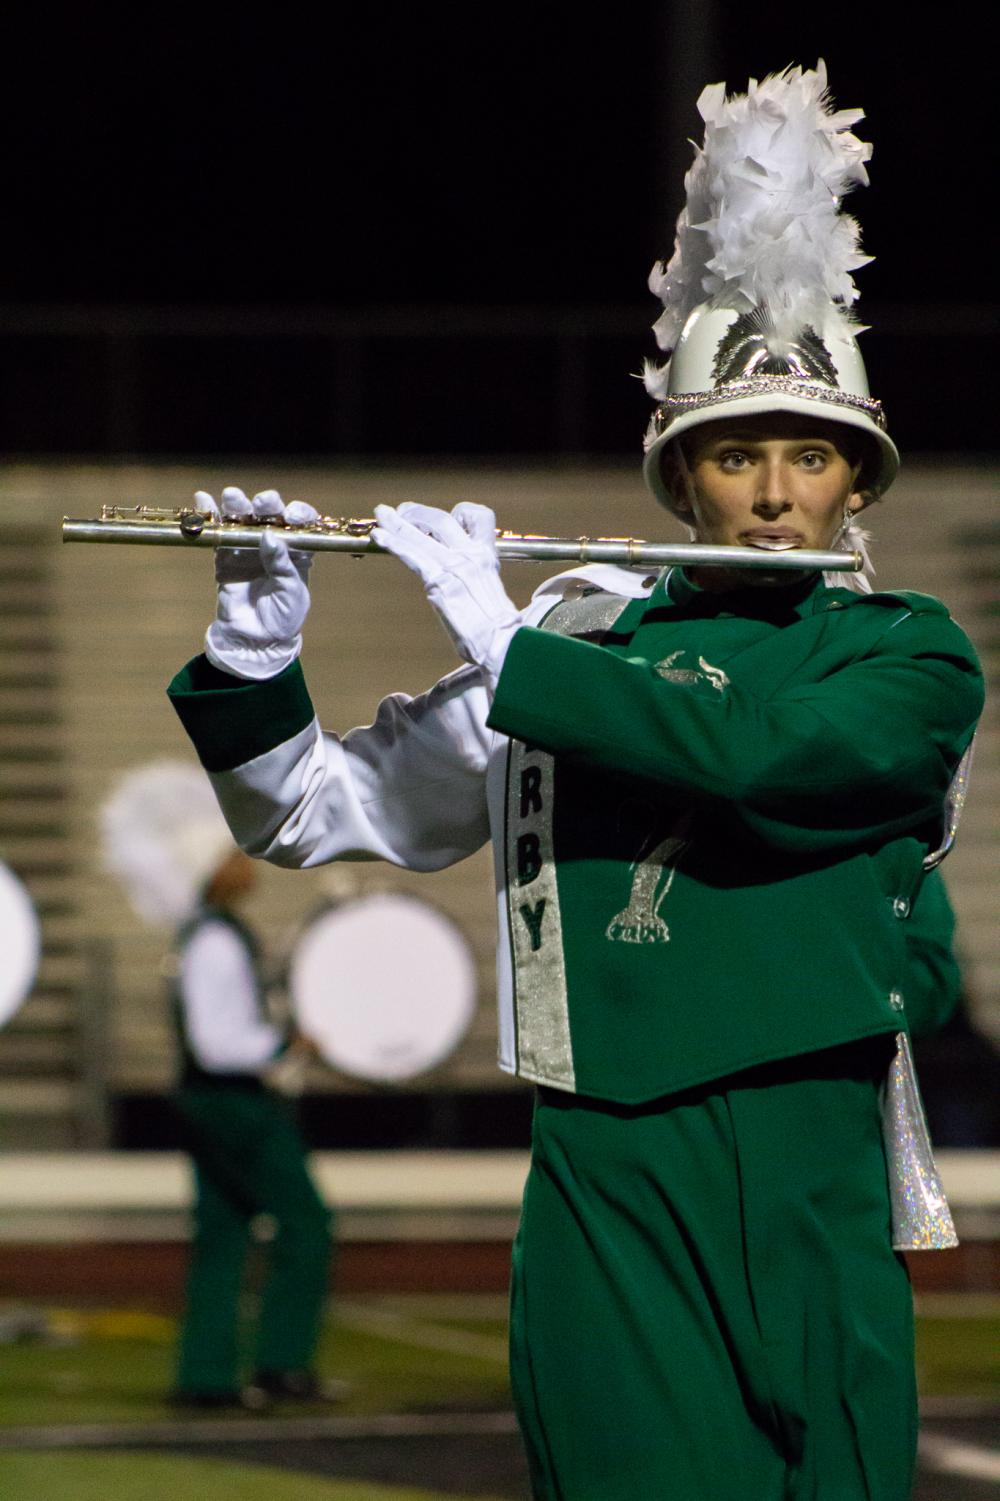 Senior Brianna Reeves plays the flute. Reeves has been in the marching band since her freshman year and her brother, sophomore Cooper Reeves, plays trumpet in the band.